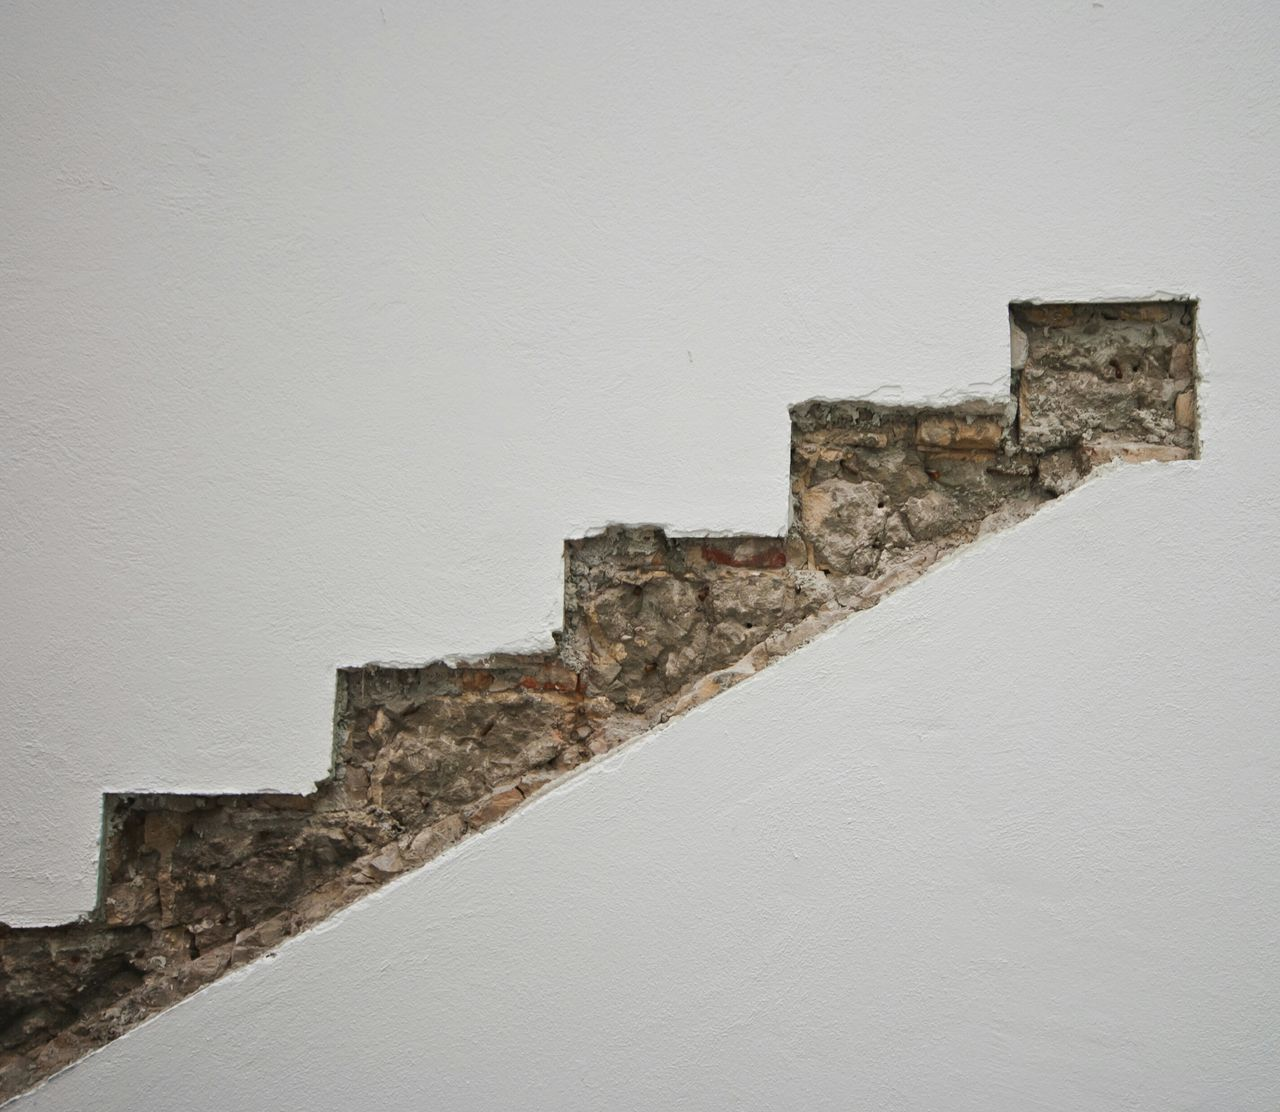 Steps by wall in building